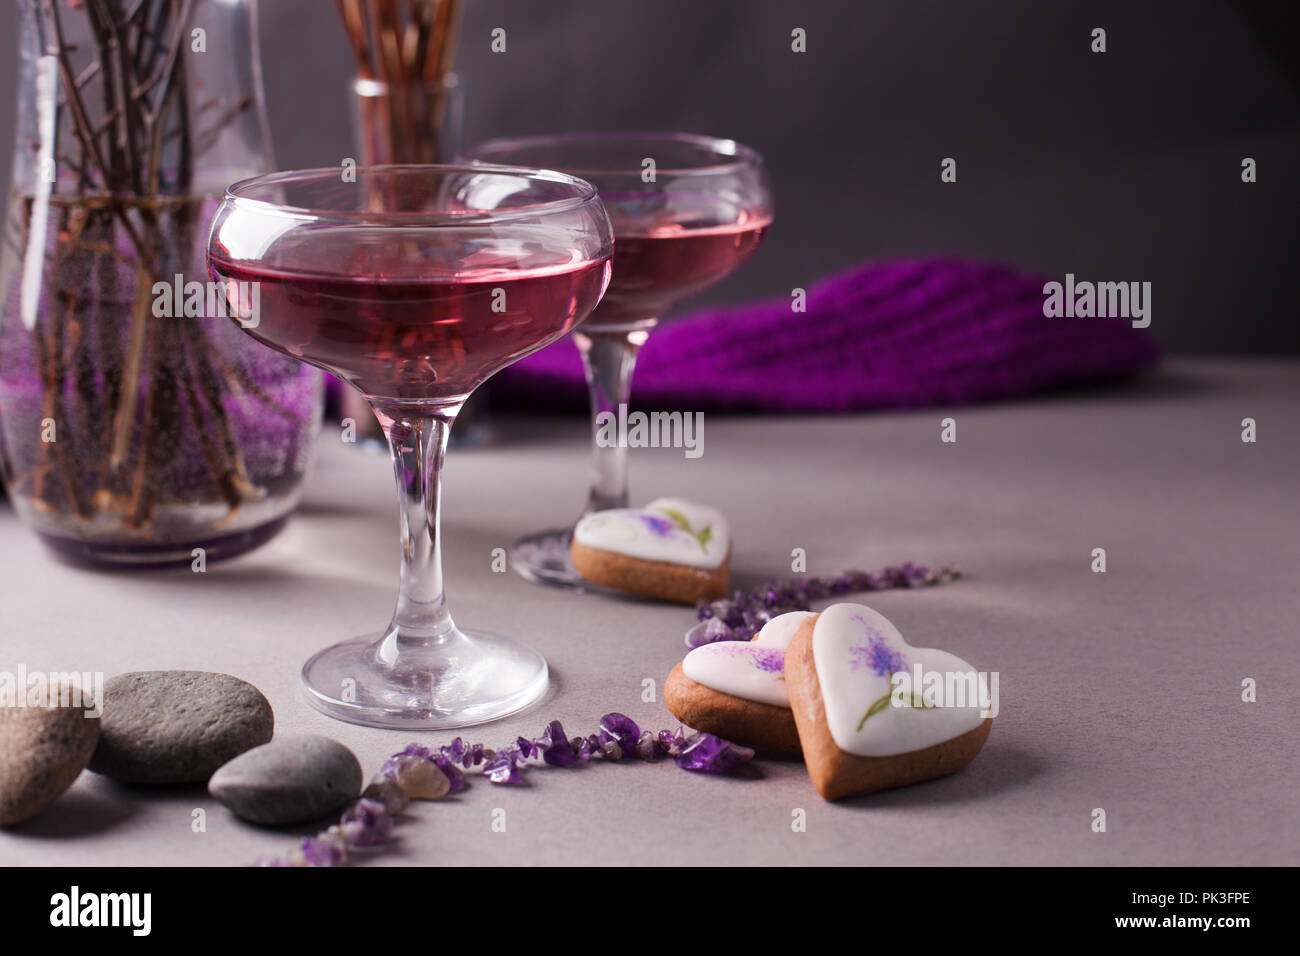 Close up view of colorful cocktails and decor for Halloween party. Mystical drink recipe for Halloween party. Selective focus. Copy space - Stock Image